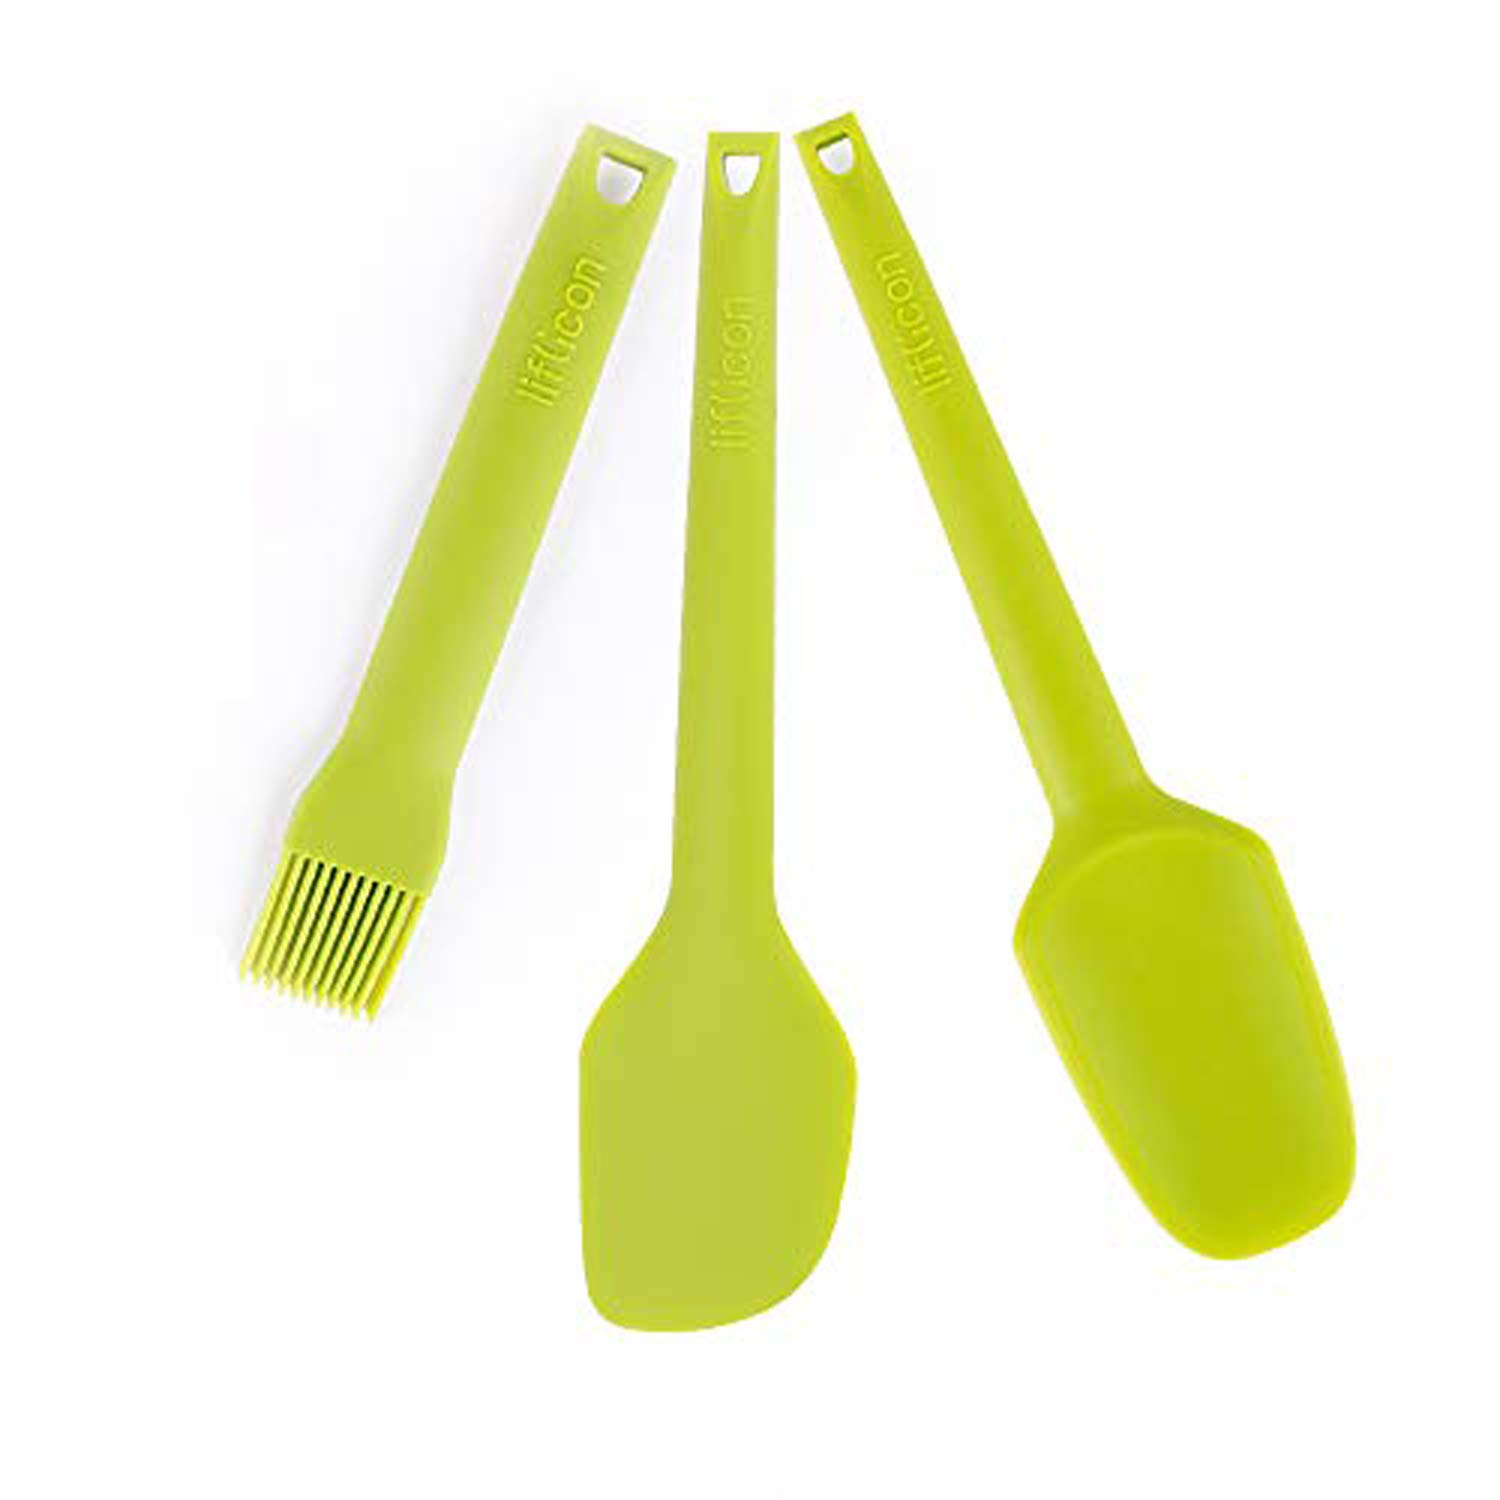 Liflicon Baking Tools Set Heat Resistant Basting Pastry Brushes for BBQ Grilling Baking Spatula knife/kitchen Spatula Spoon Dishwasher Safe - Green